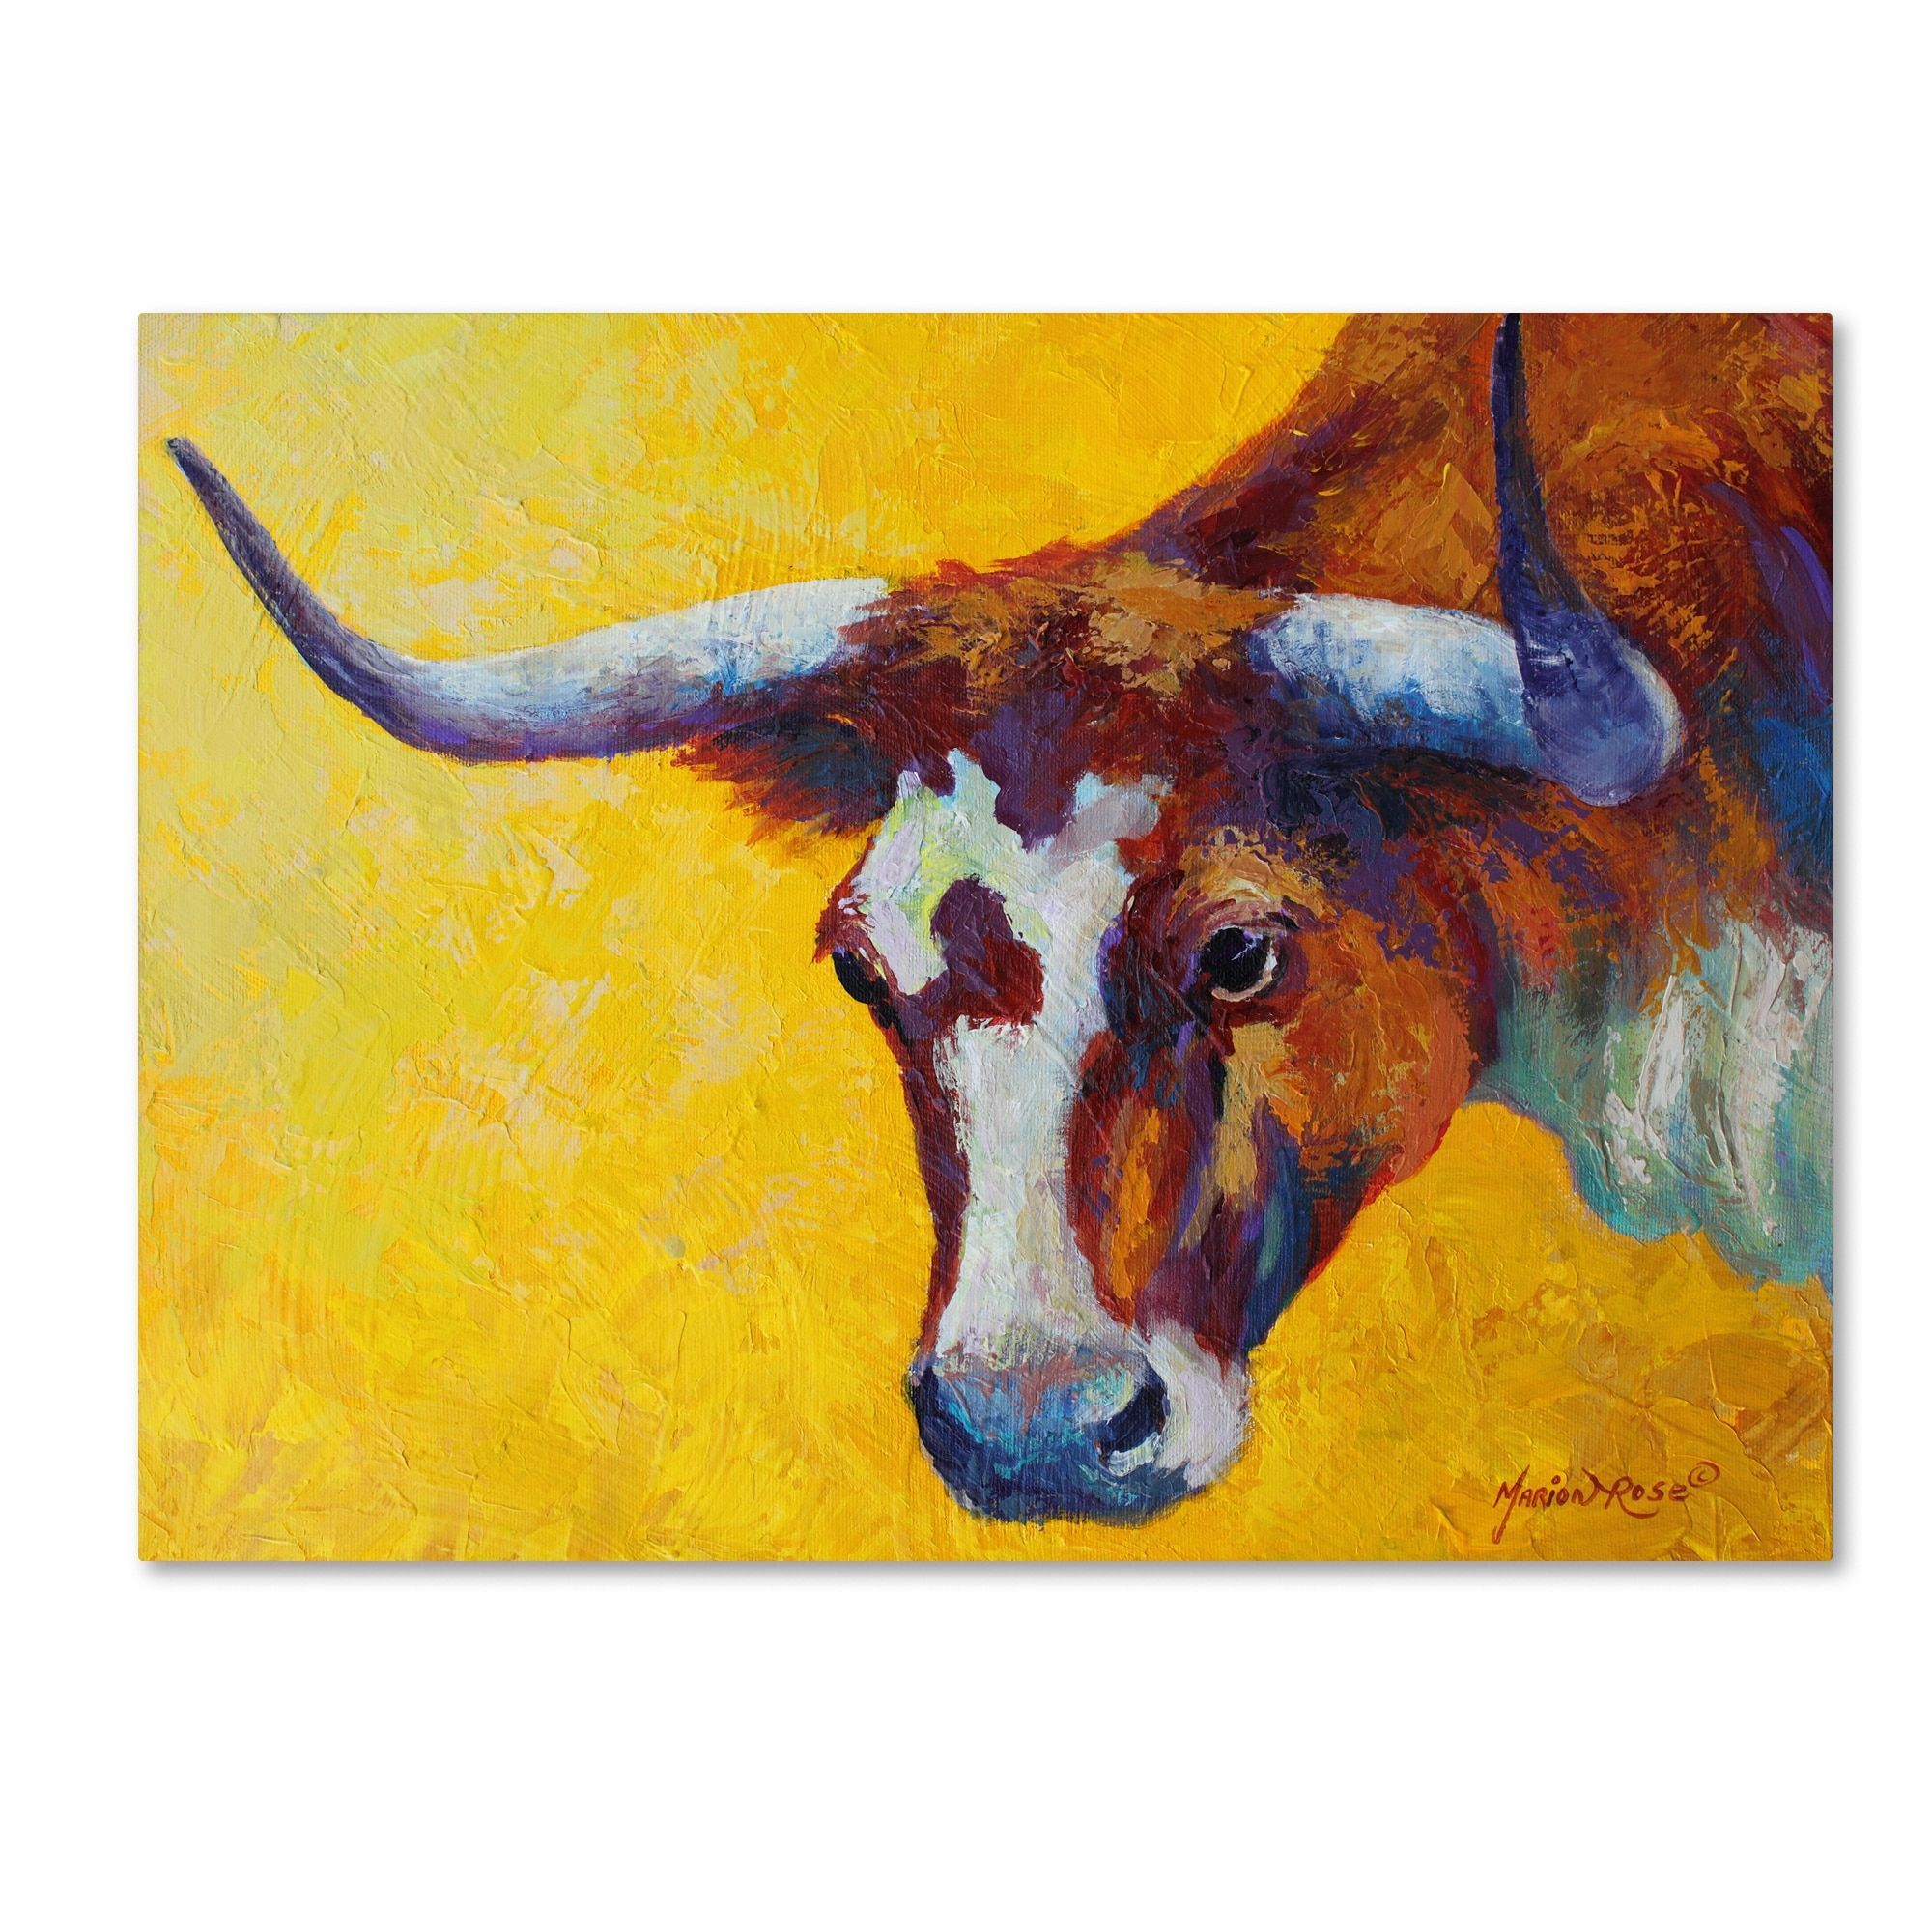 Marion | Products | Pinterest | Longhorn cow, Cow and Canvases